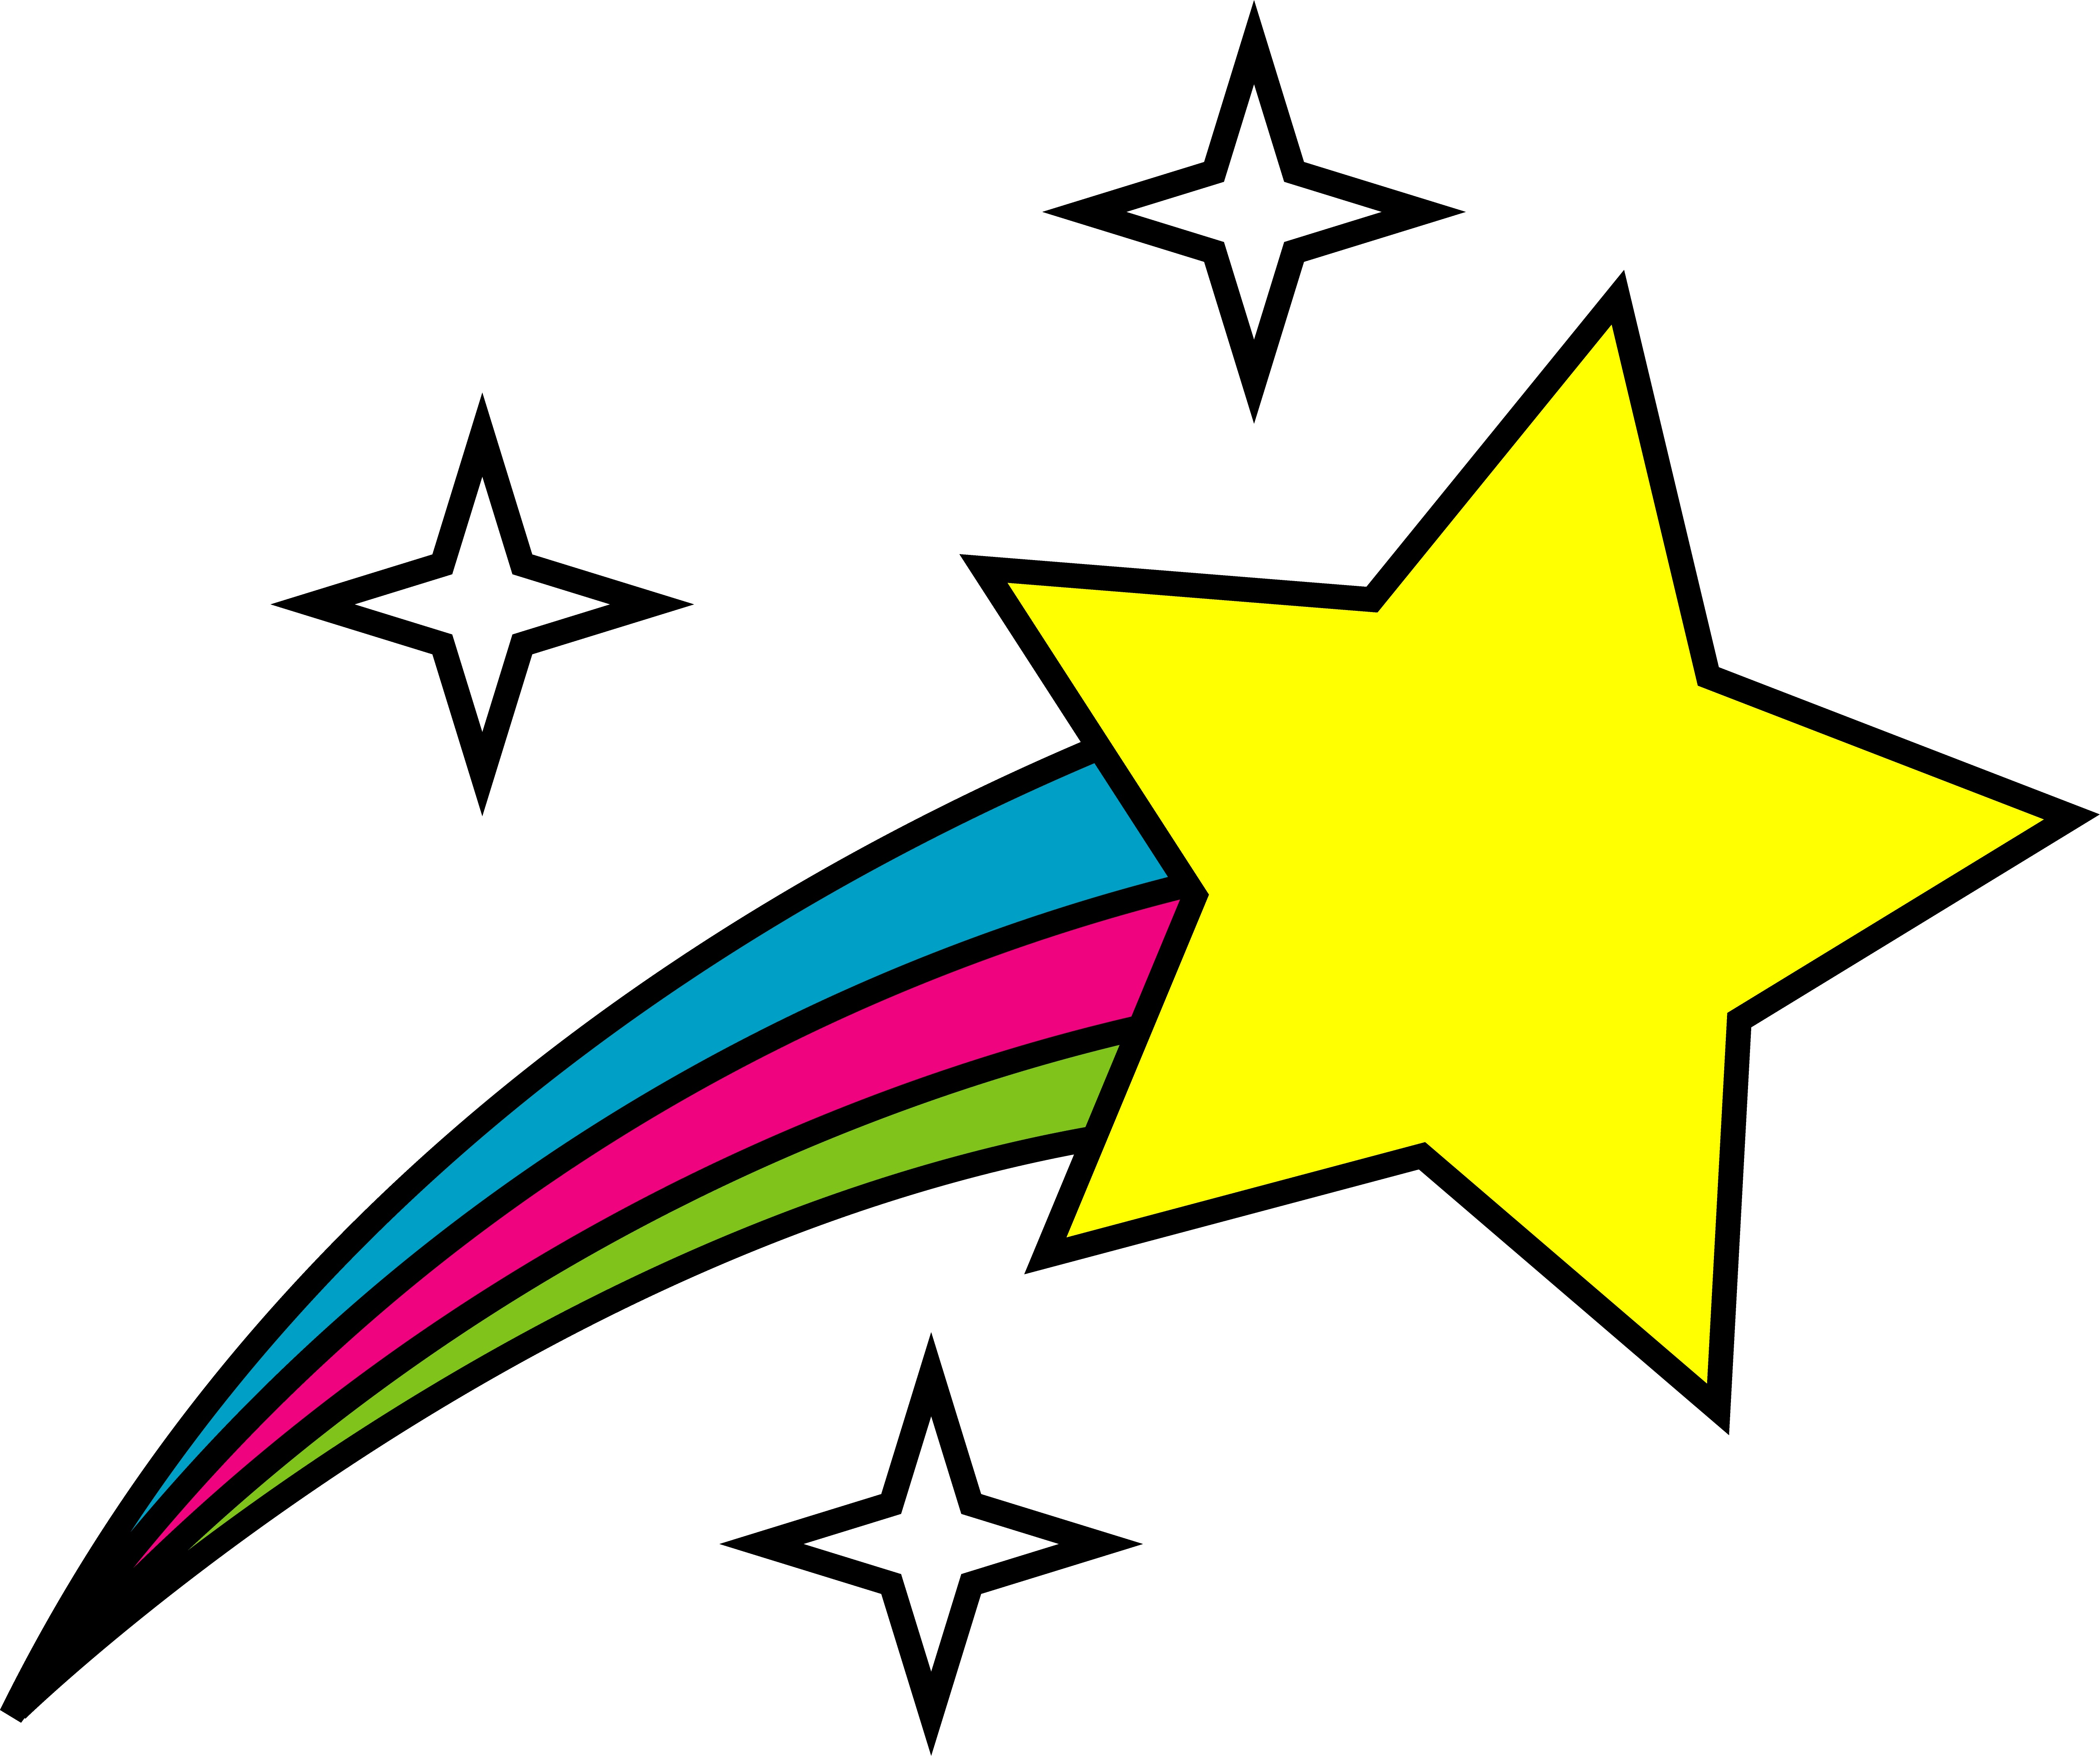 Star jpg clipart royalty free download Clipart Star & Star Clip Art Images - ClipartALL.com royalty free download